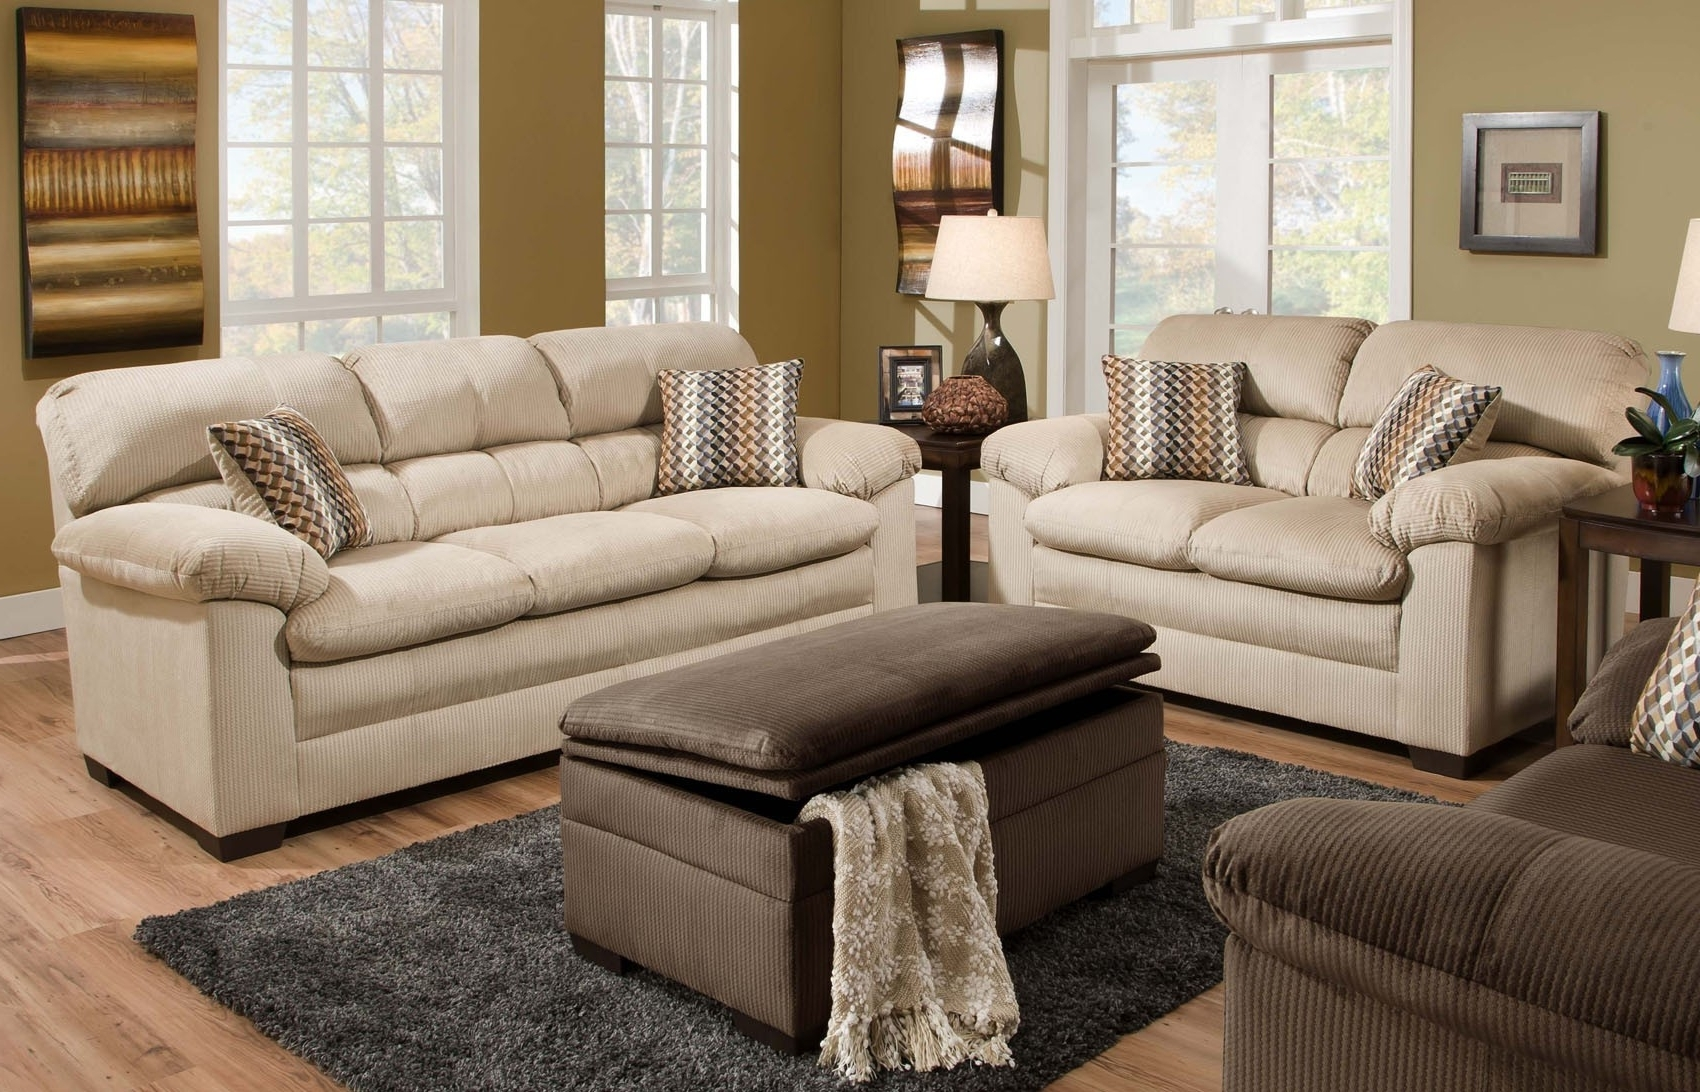 Lakewood Oversized Sofa & Loveseat Set (Beige) (View 9 of 15)